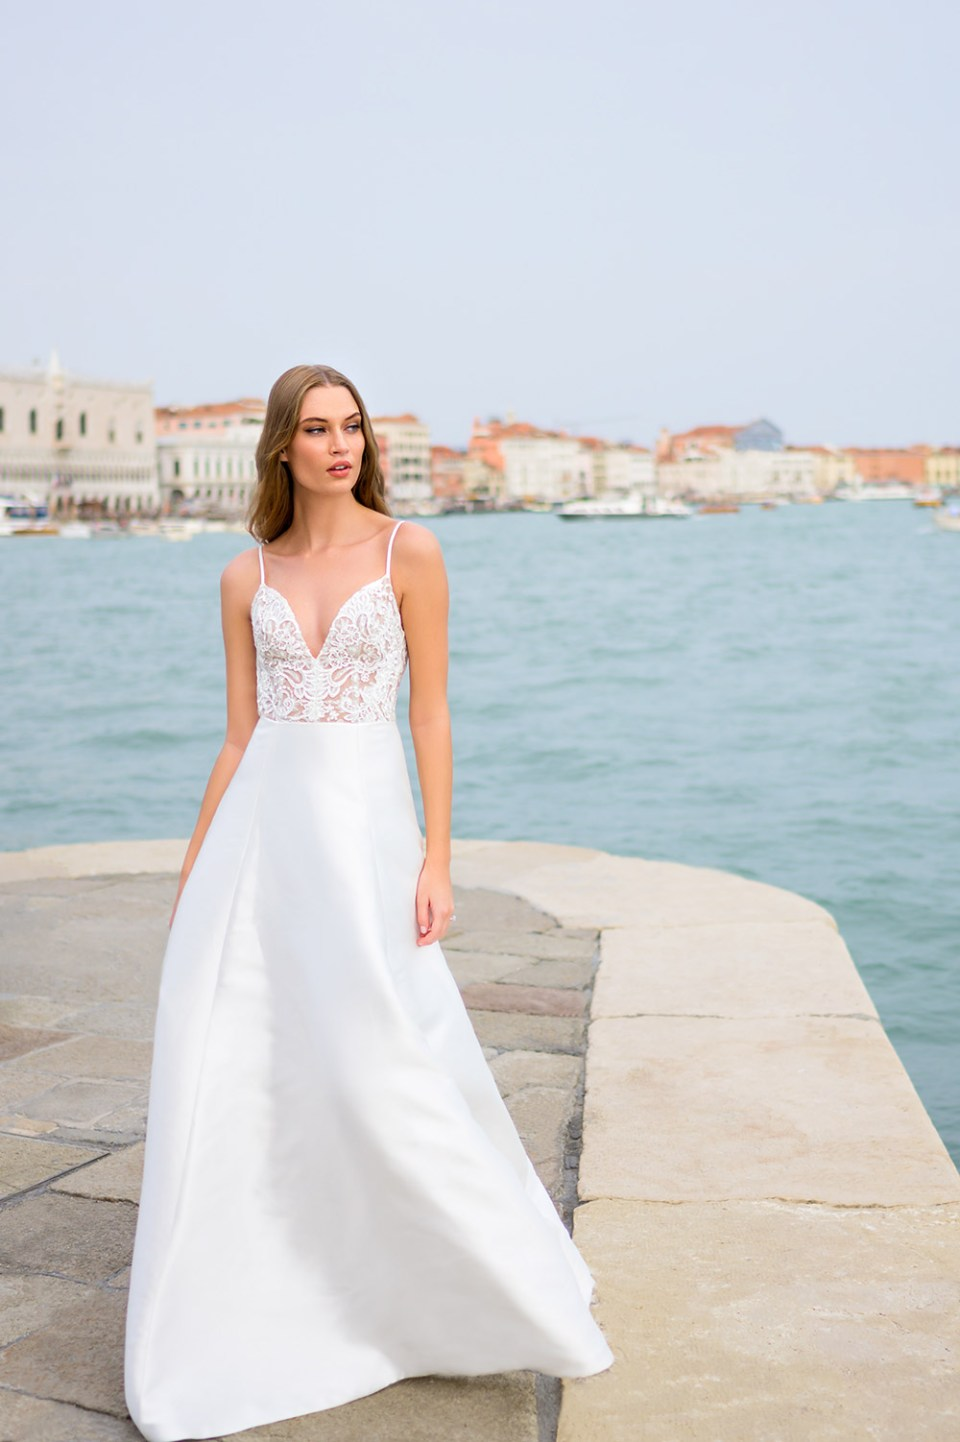 Bliss Monique Lhuillier Fall 2020 Bridal Collection. www.theweddingnotebook.com